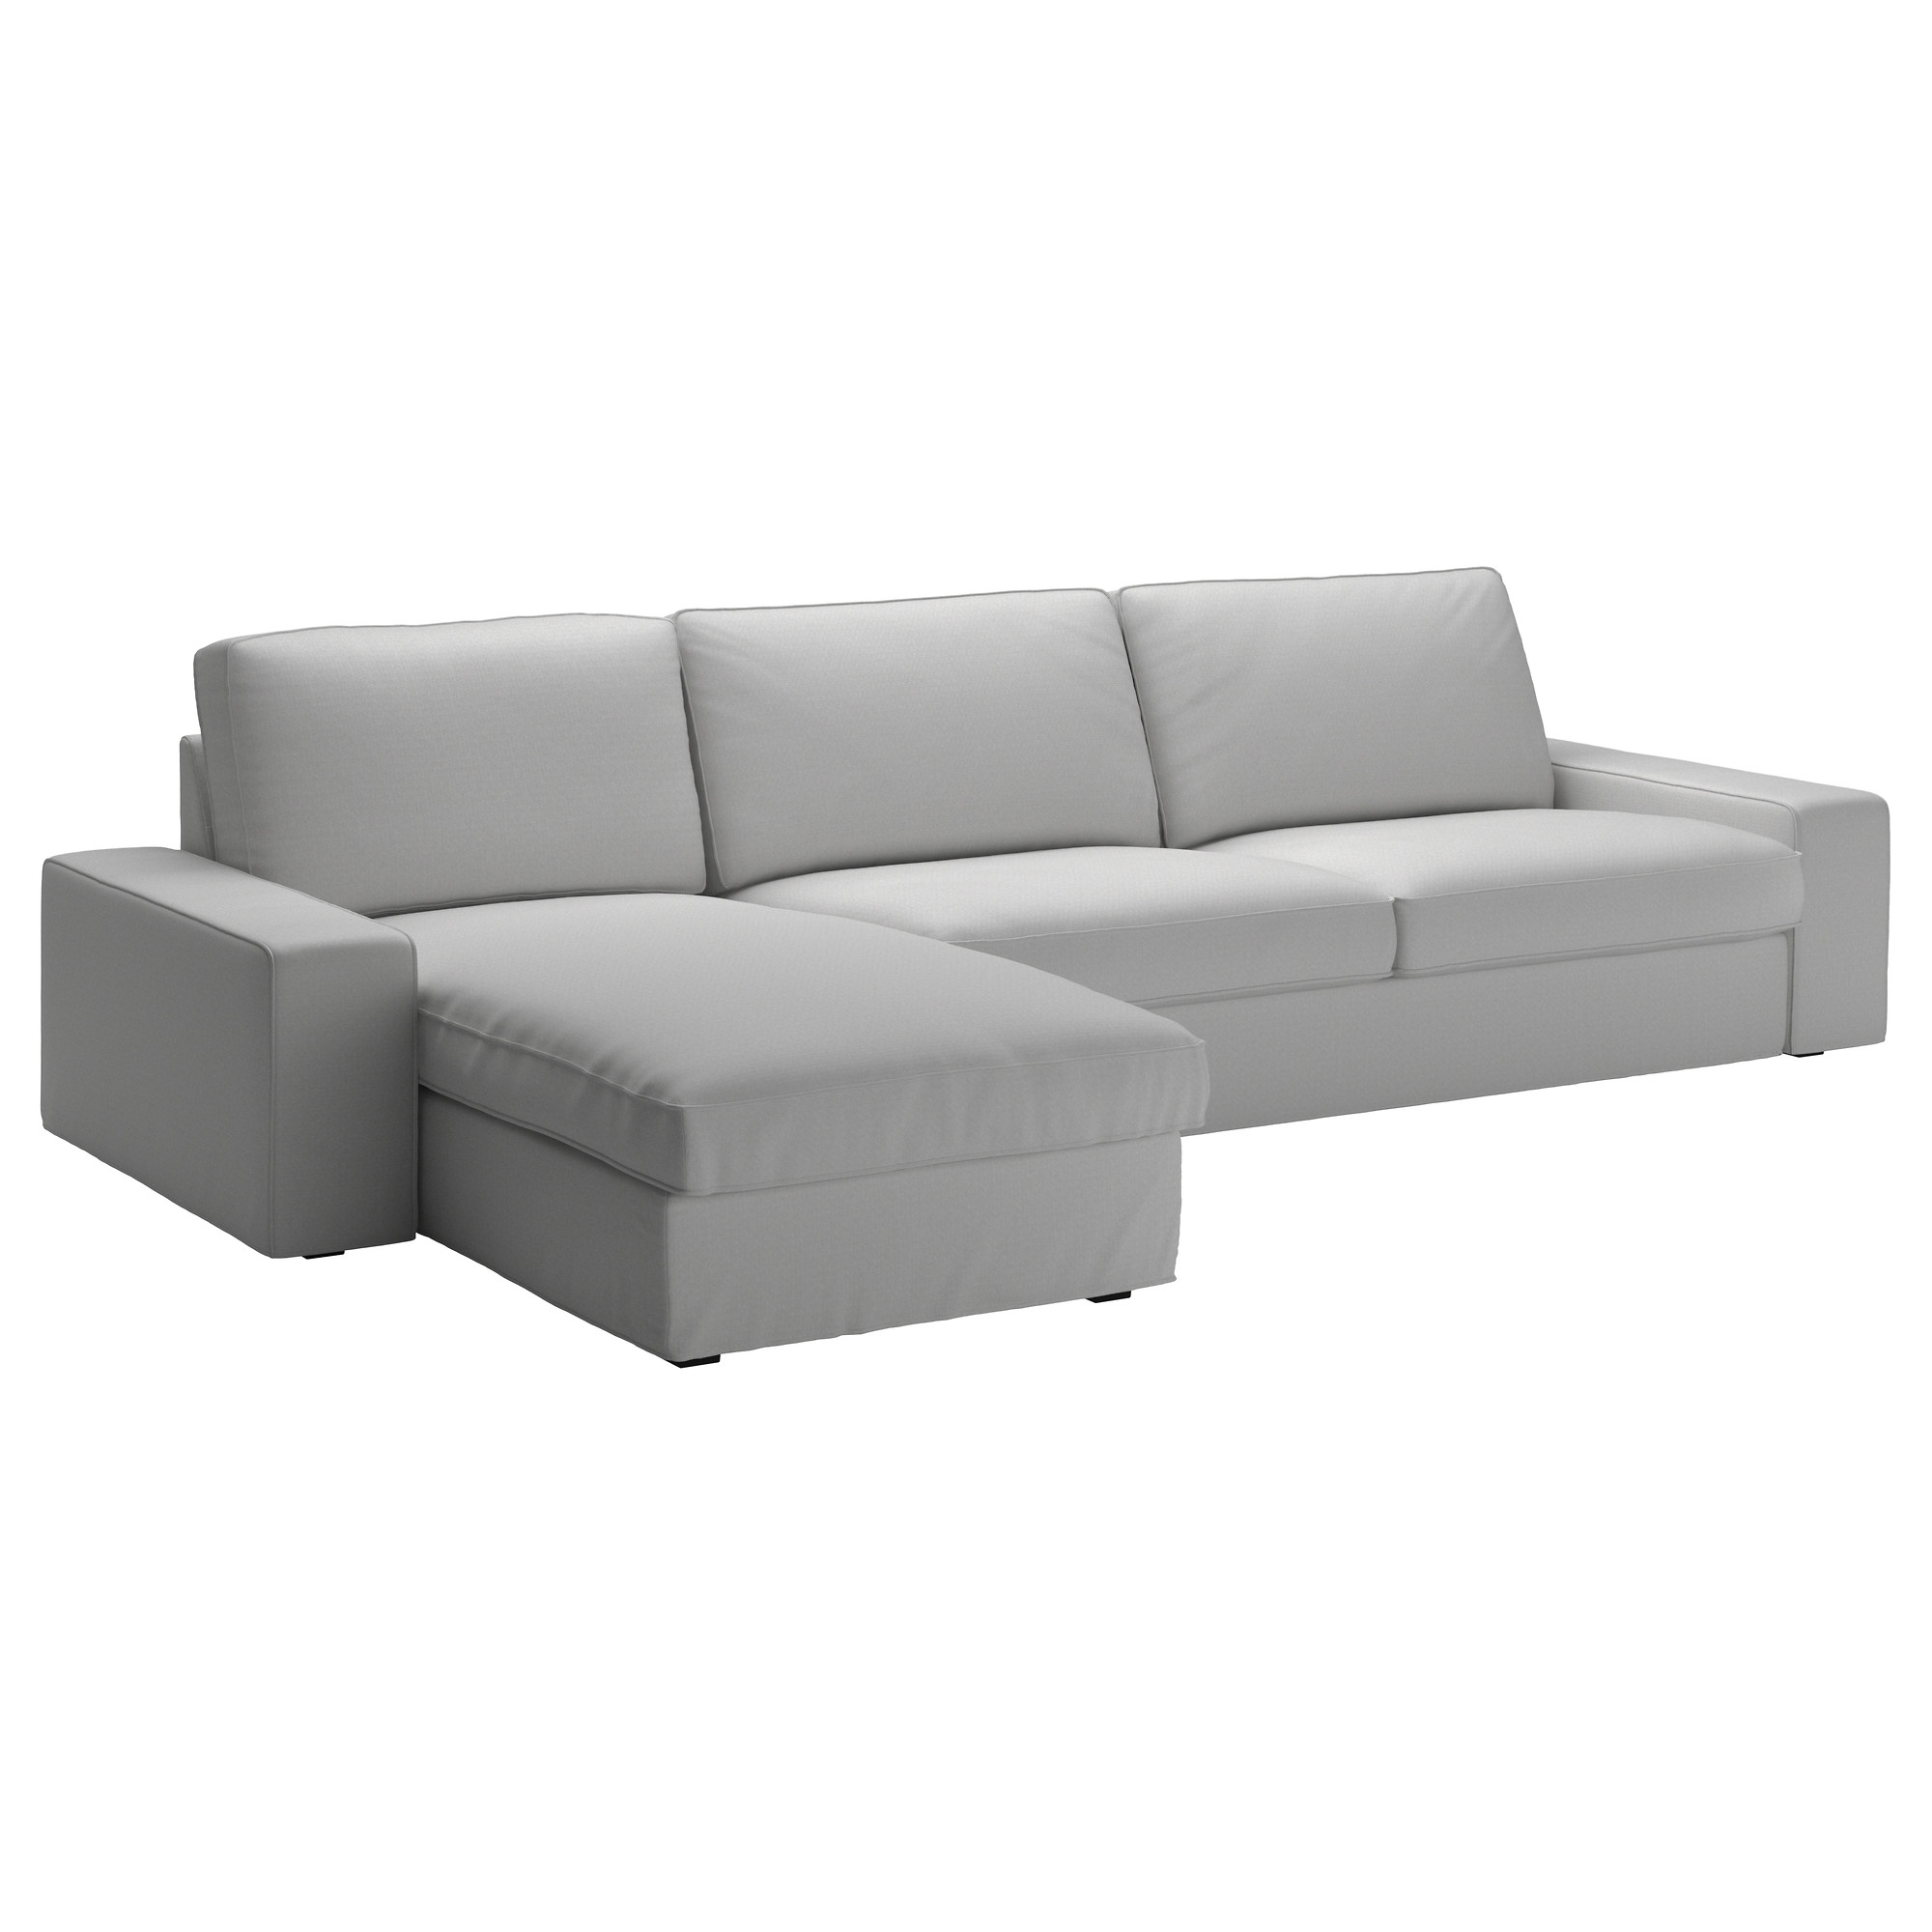 Sectional Sofas At Ikea In Well Known Kivik Sectional, 4 Seat – Orrsta Light Gray – Ikea (View 3 of 15)